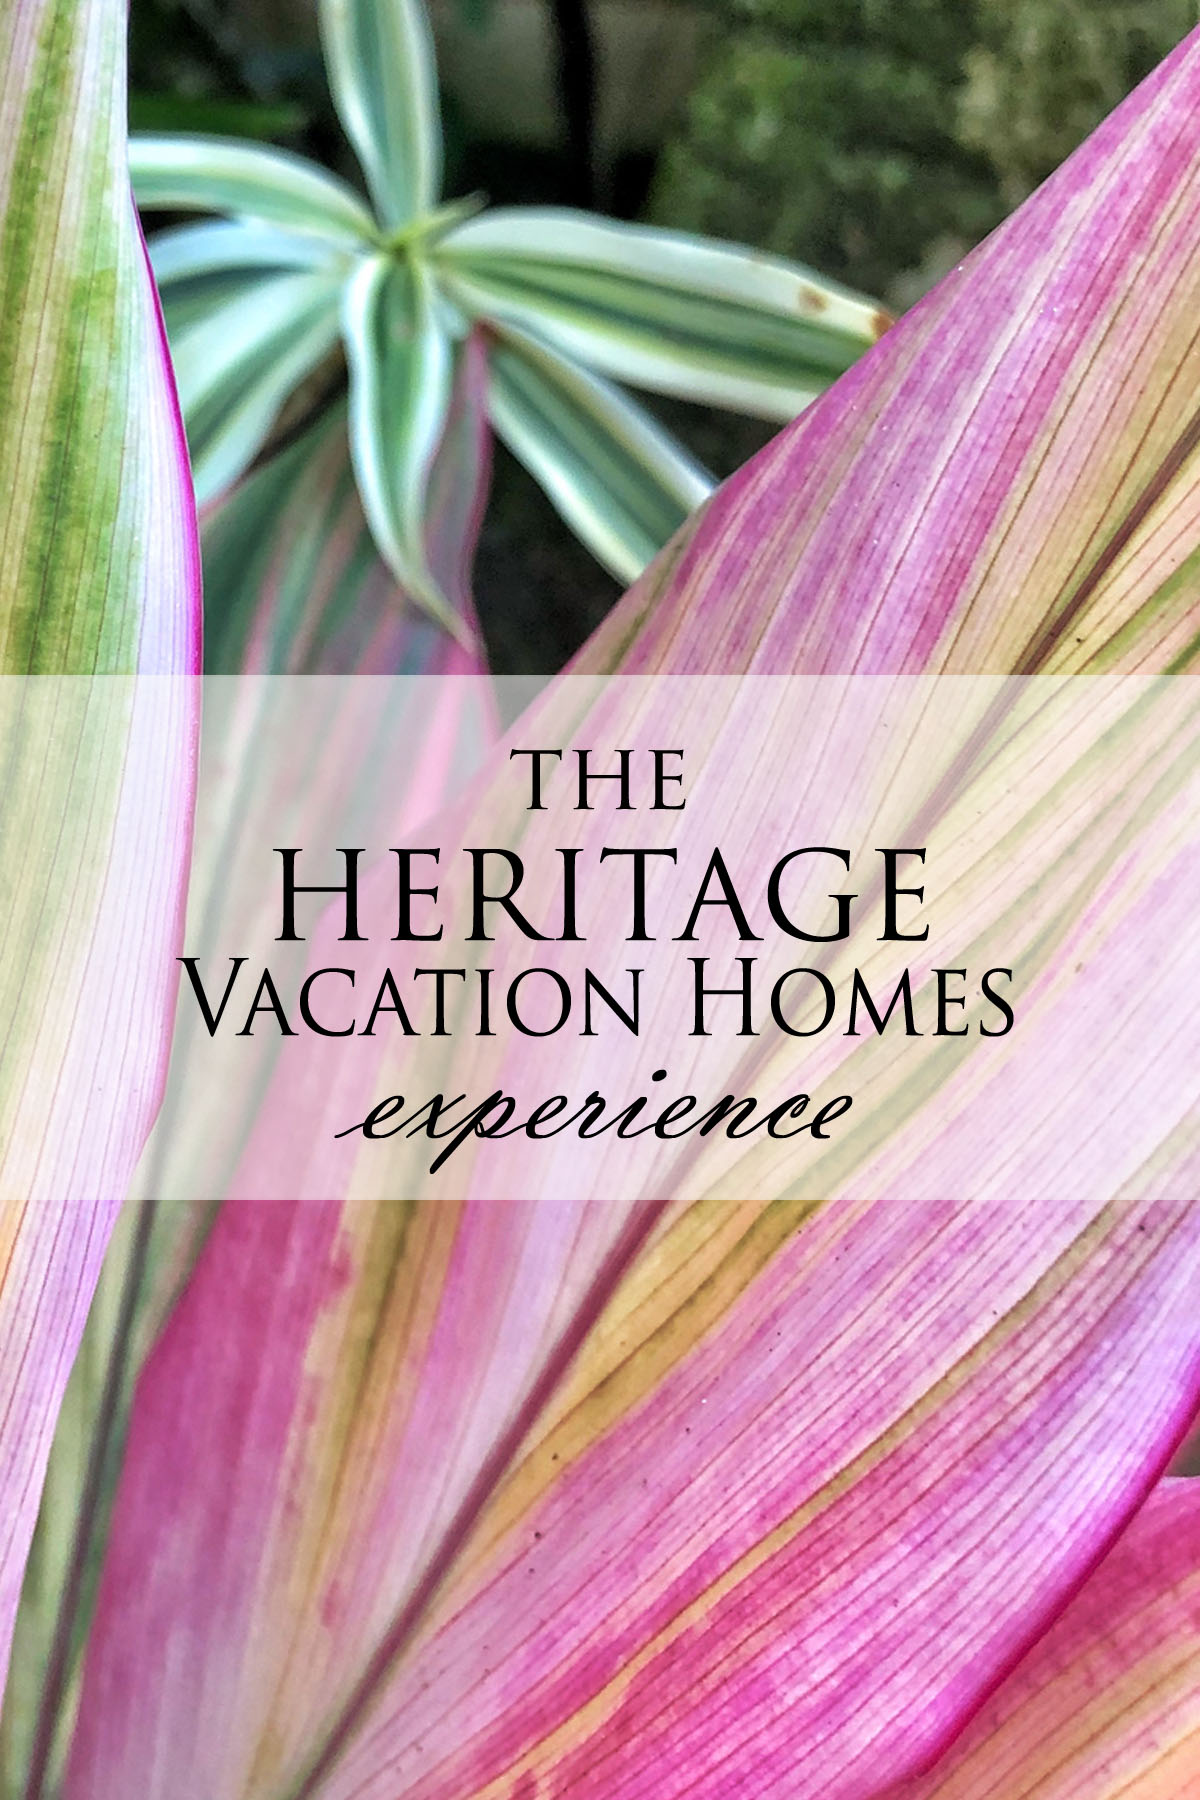 The Heritage Vacation Homes Experience